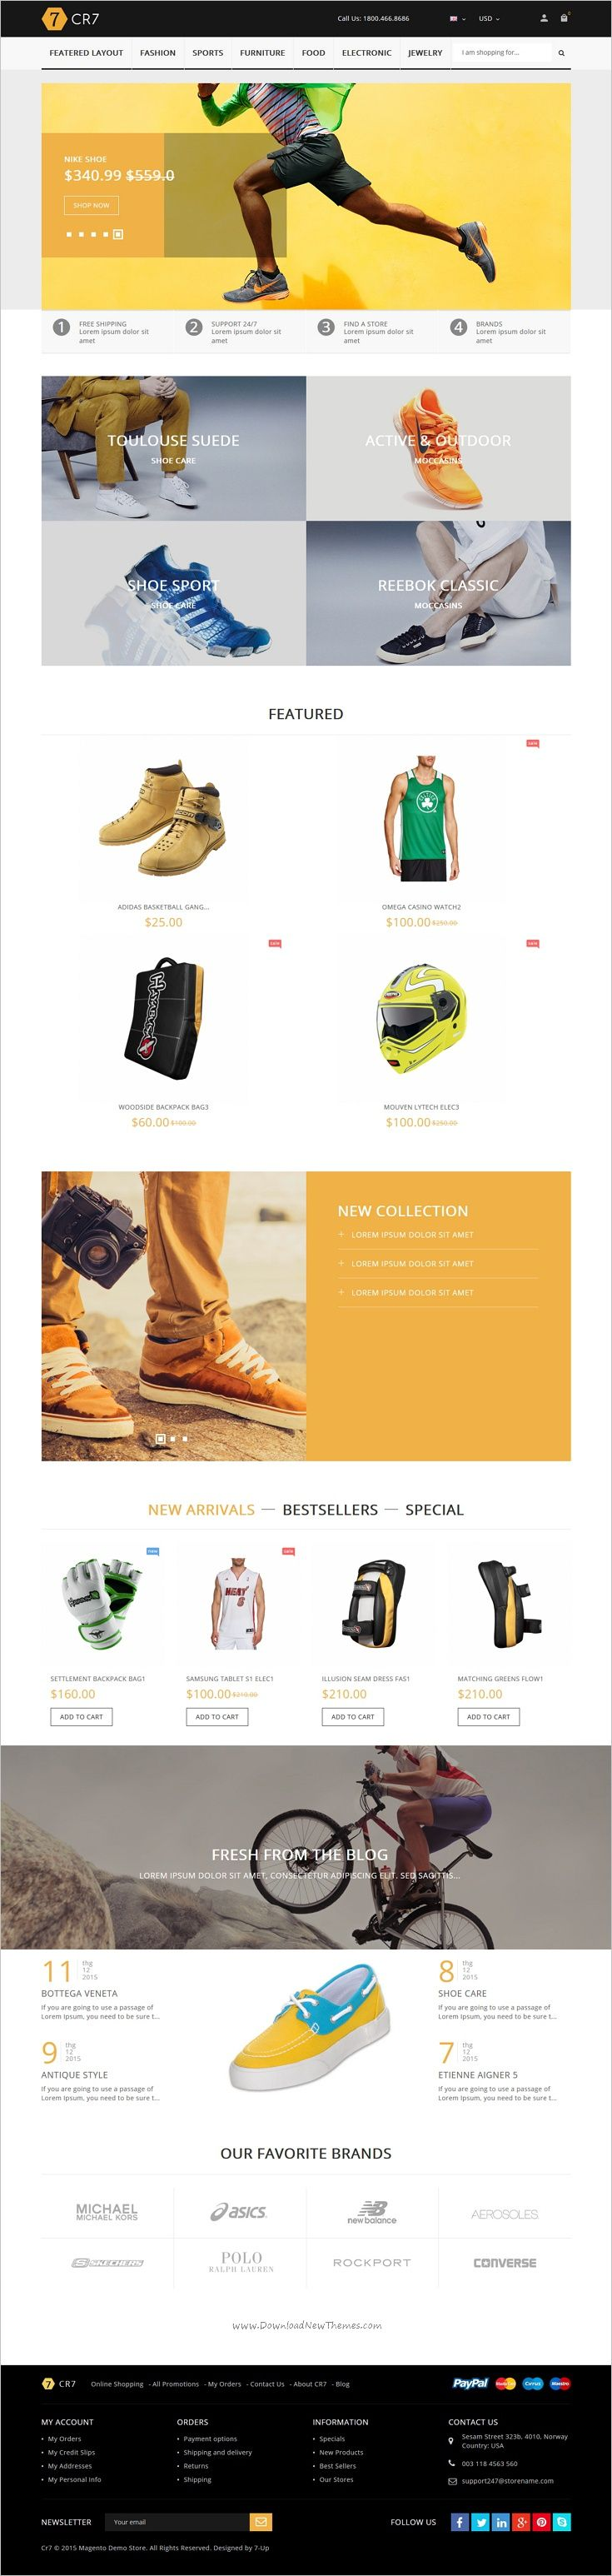 Shop store is wonderful responsive html bootstrap template for awesome shoes ecommerce